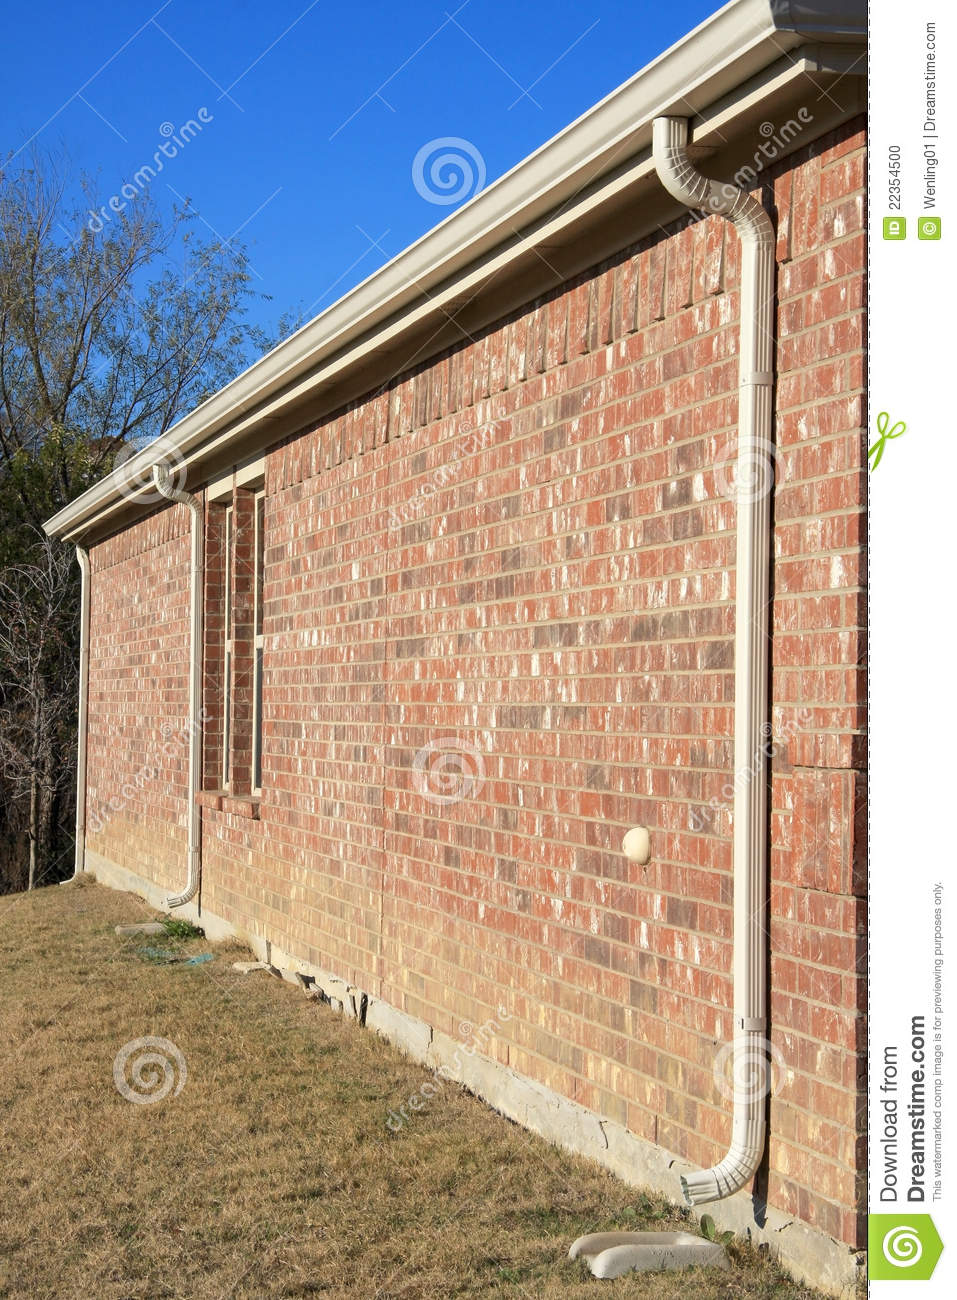 Drain pipe on the wall stock photo image 22354500 for House roof drain pipes